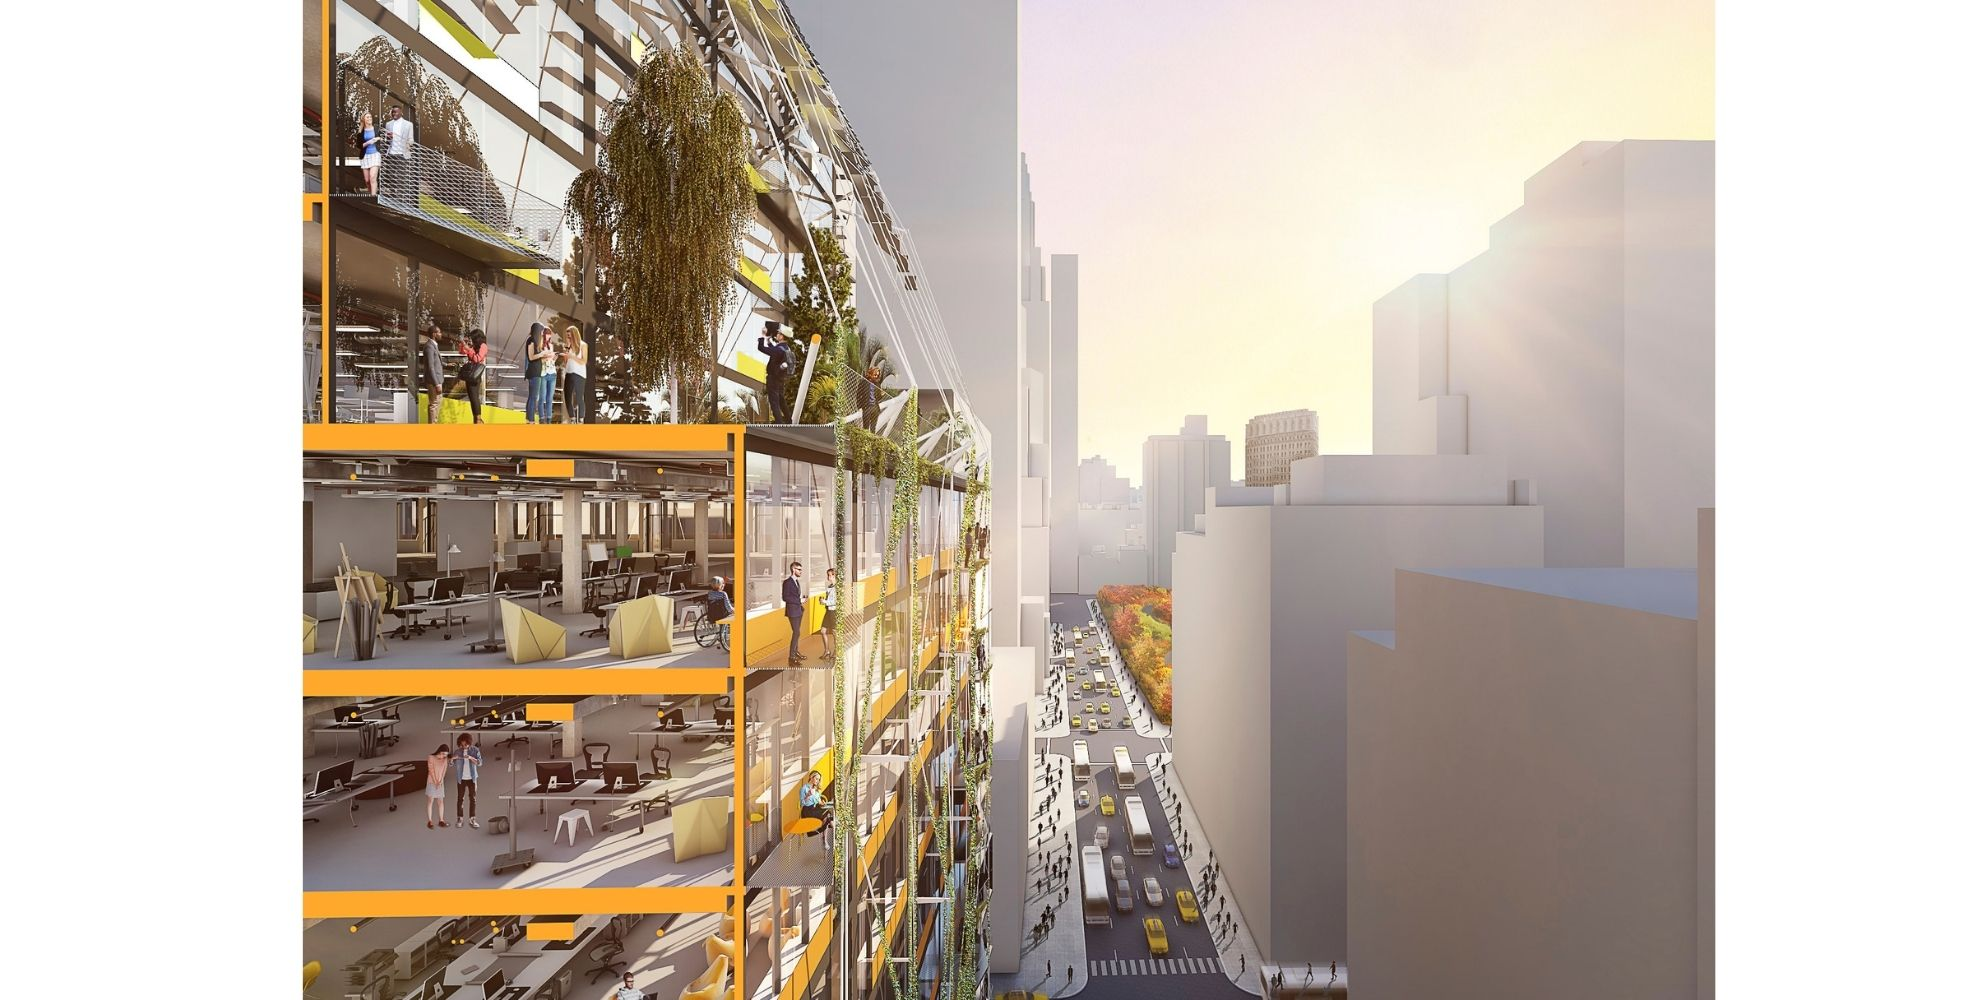 Sustainable design in a winning proposal for an ideas competition.